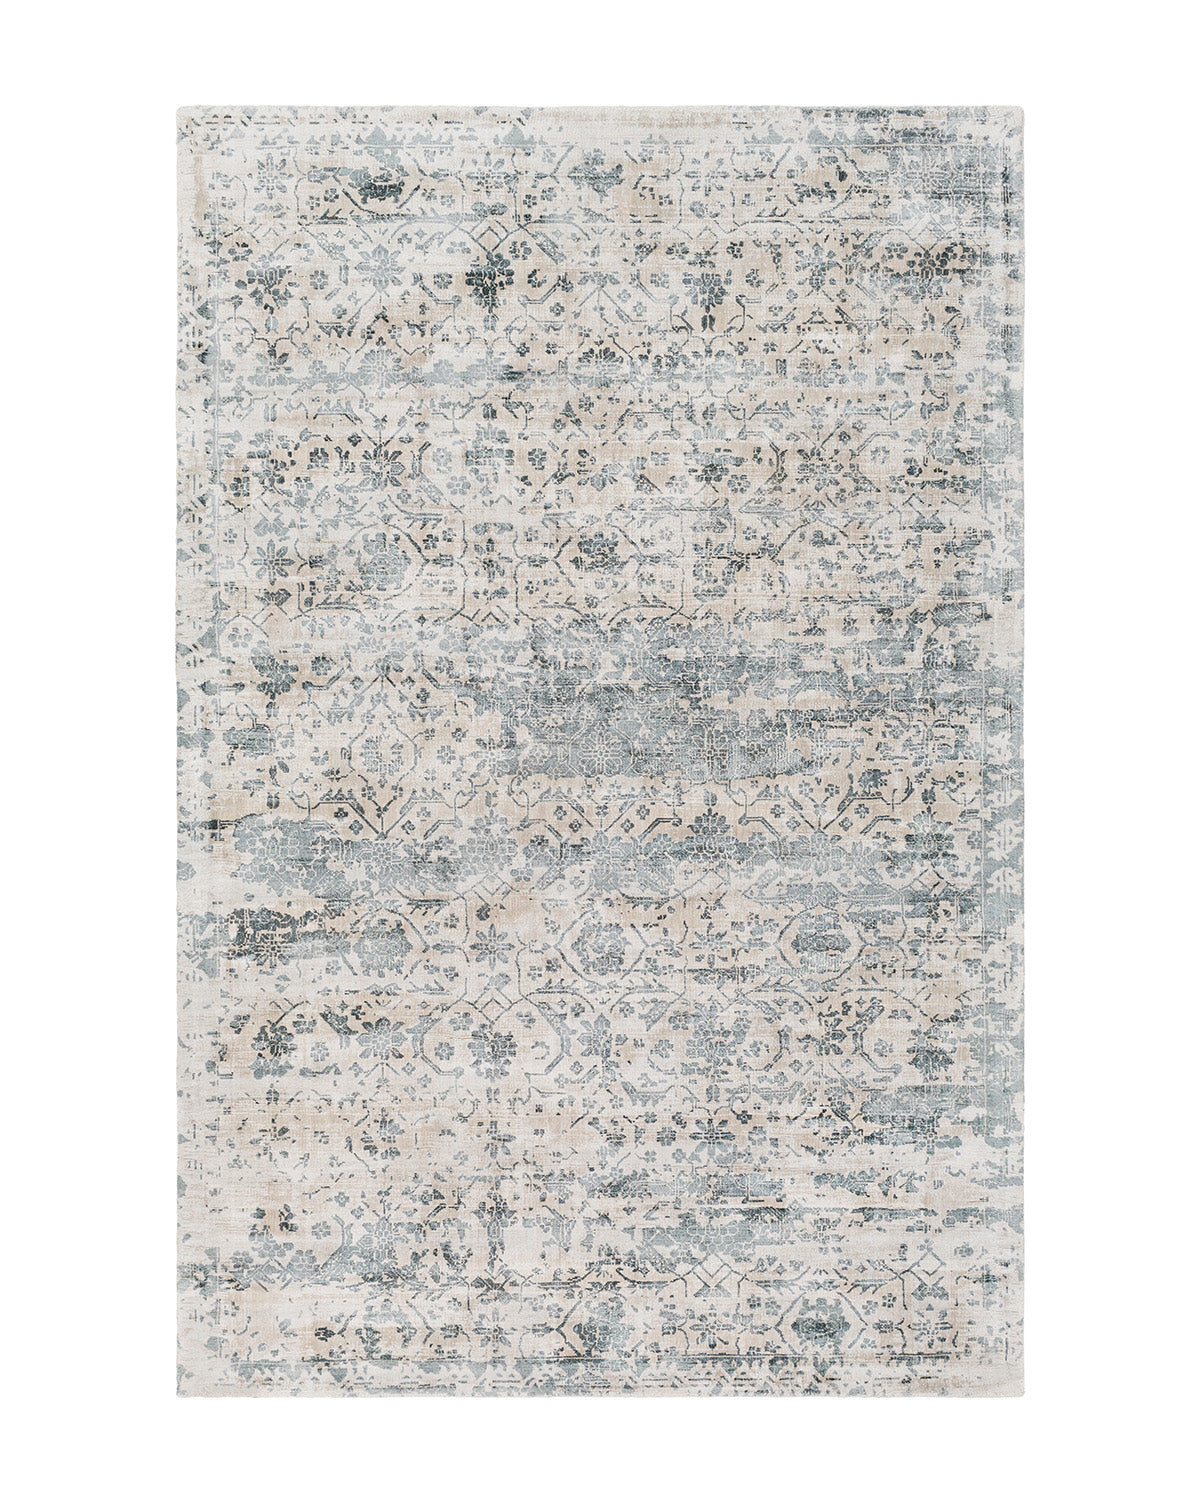 Moscow Hand-Loomed Rug